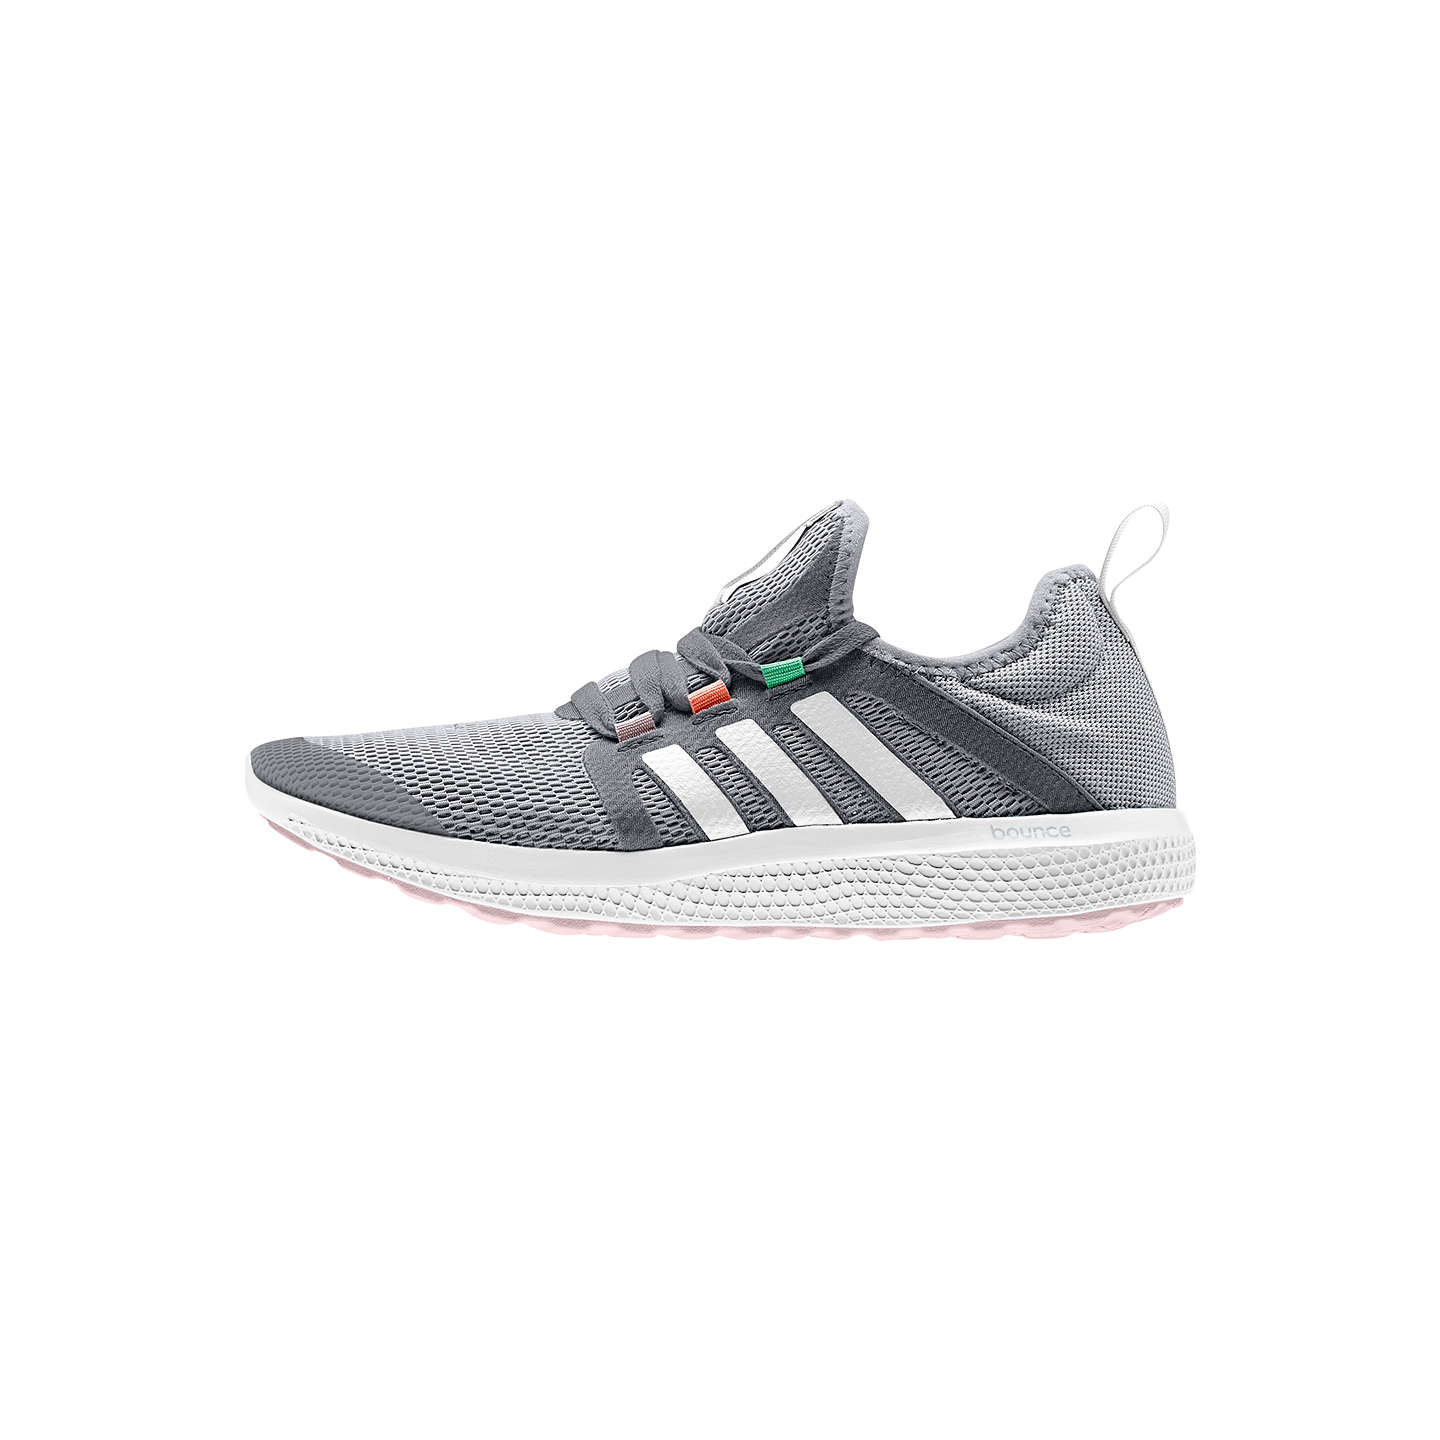 Adidas Climacool Fresh Bounce Women S Running Shoes Grey 4 Online At Johnlewis